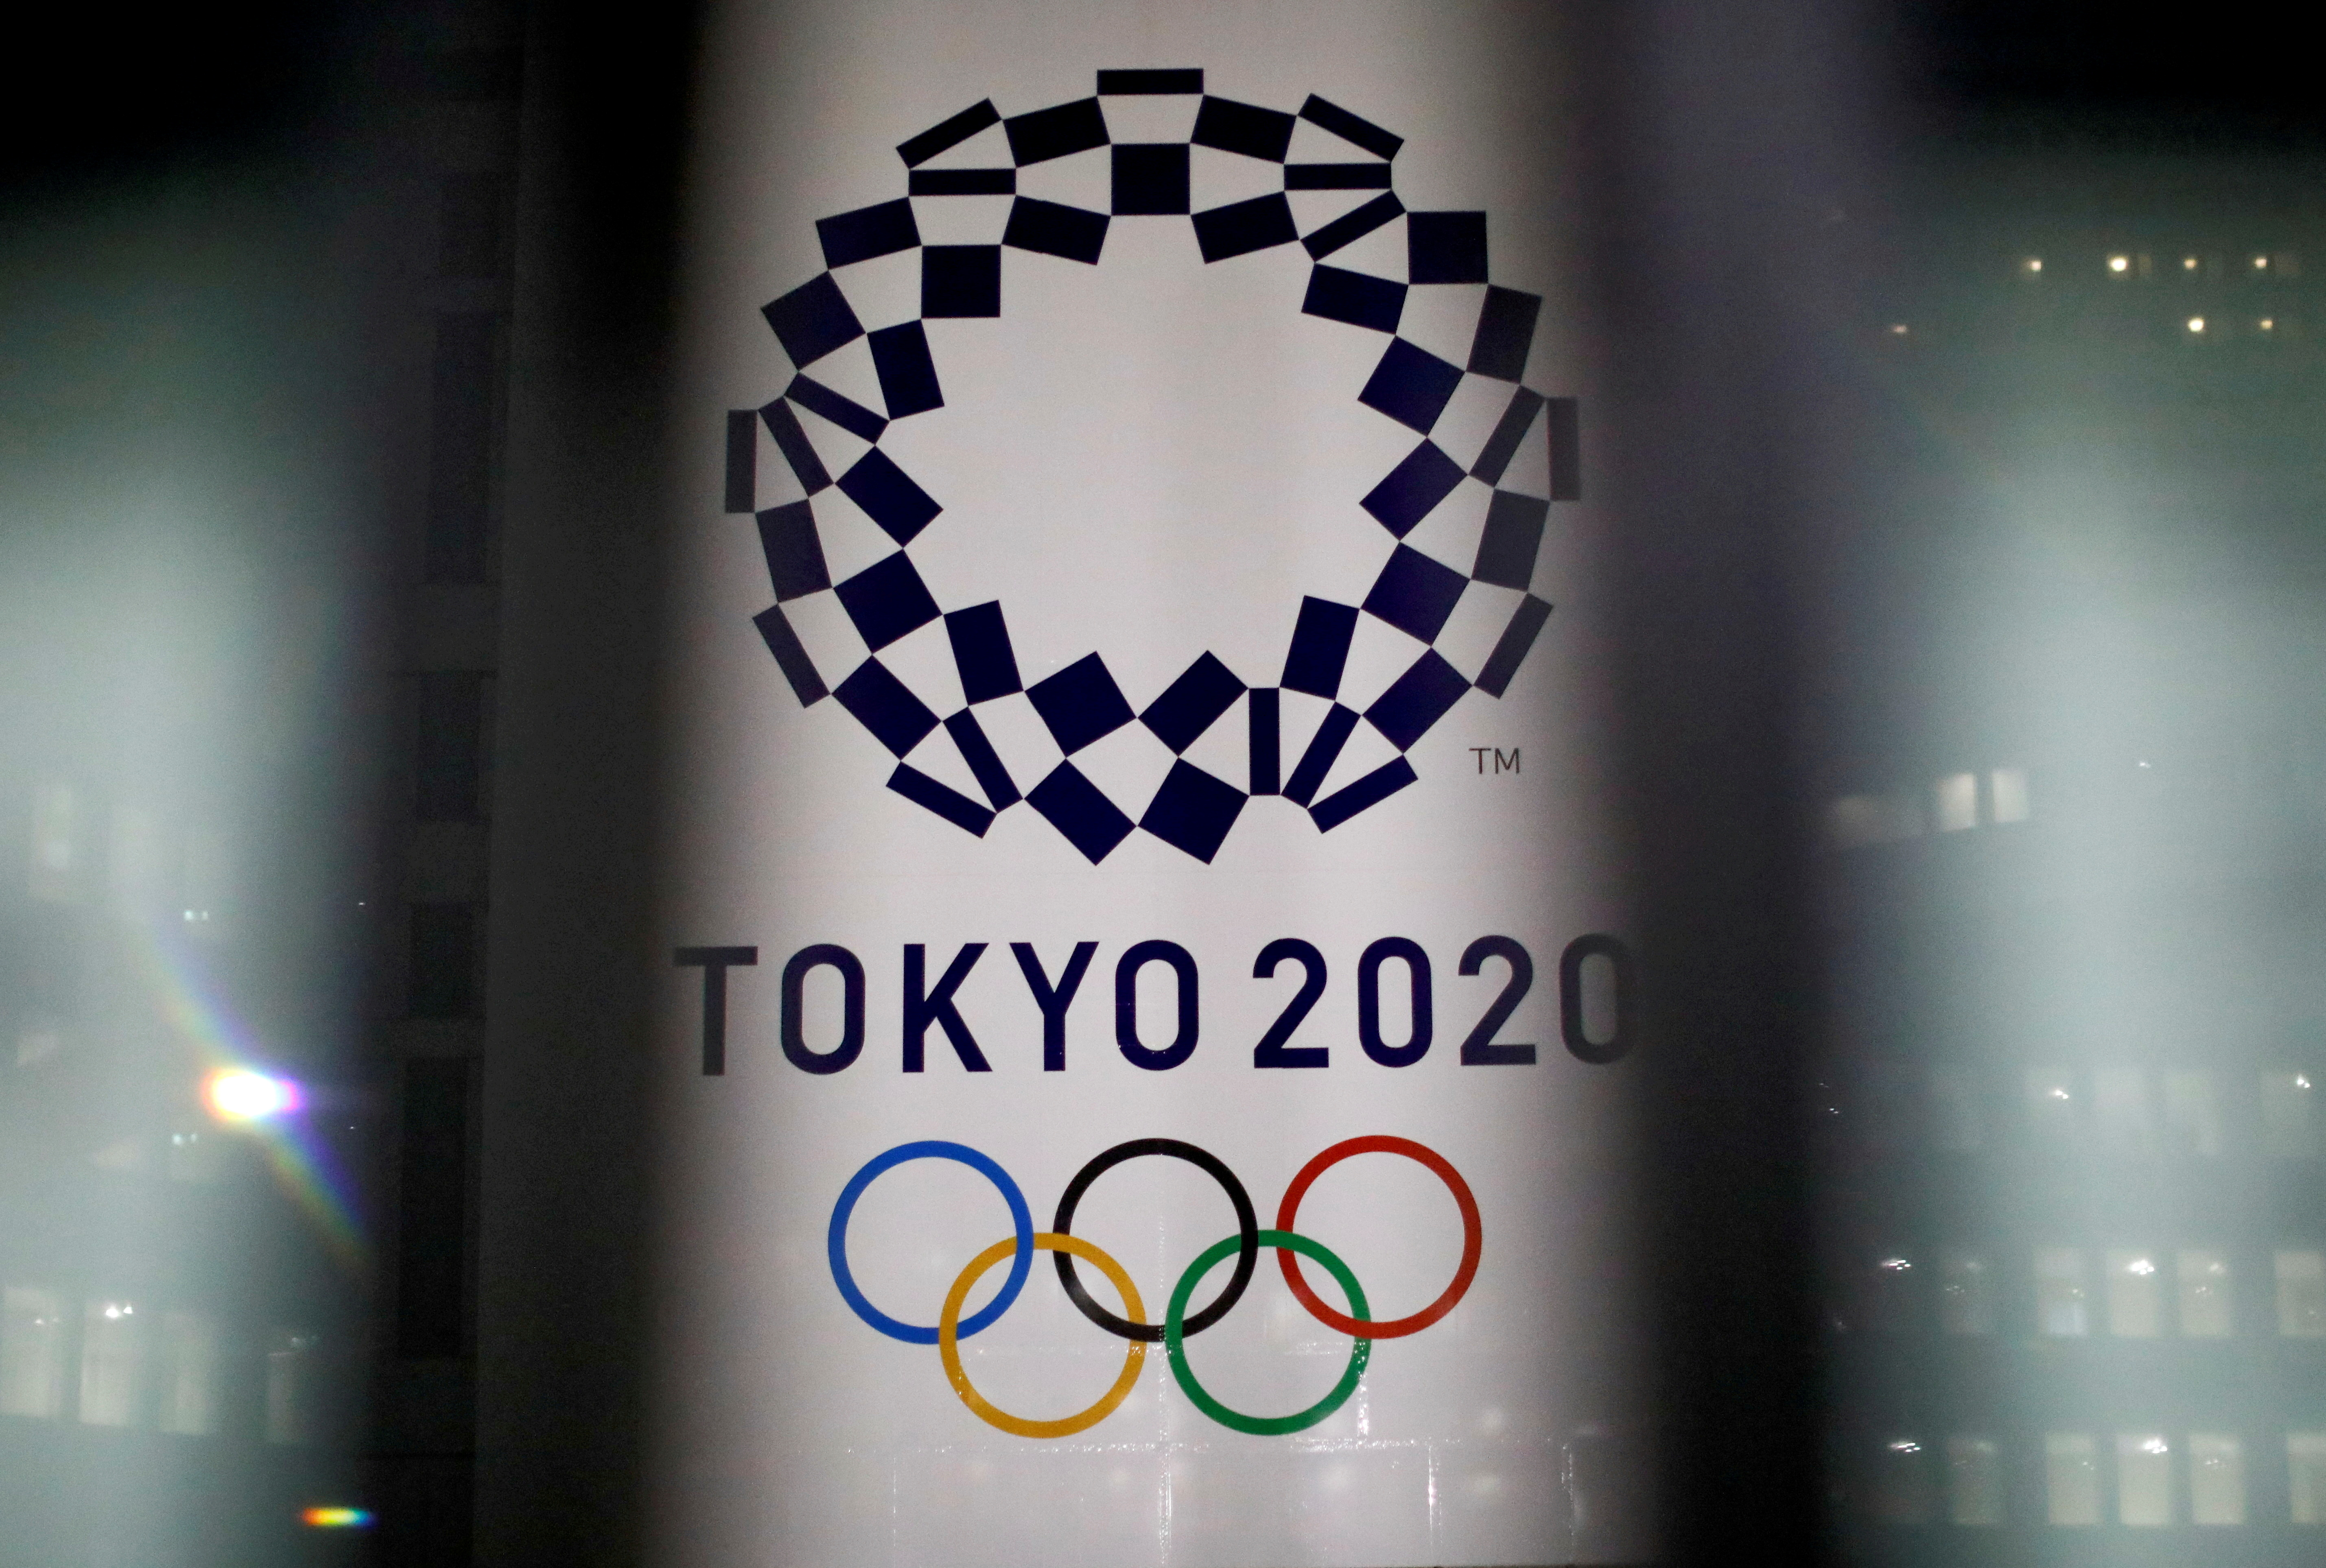 Olympics-Japan may keep some virus curbs until Games start -paper